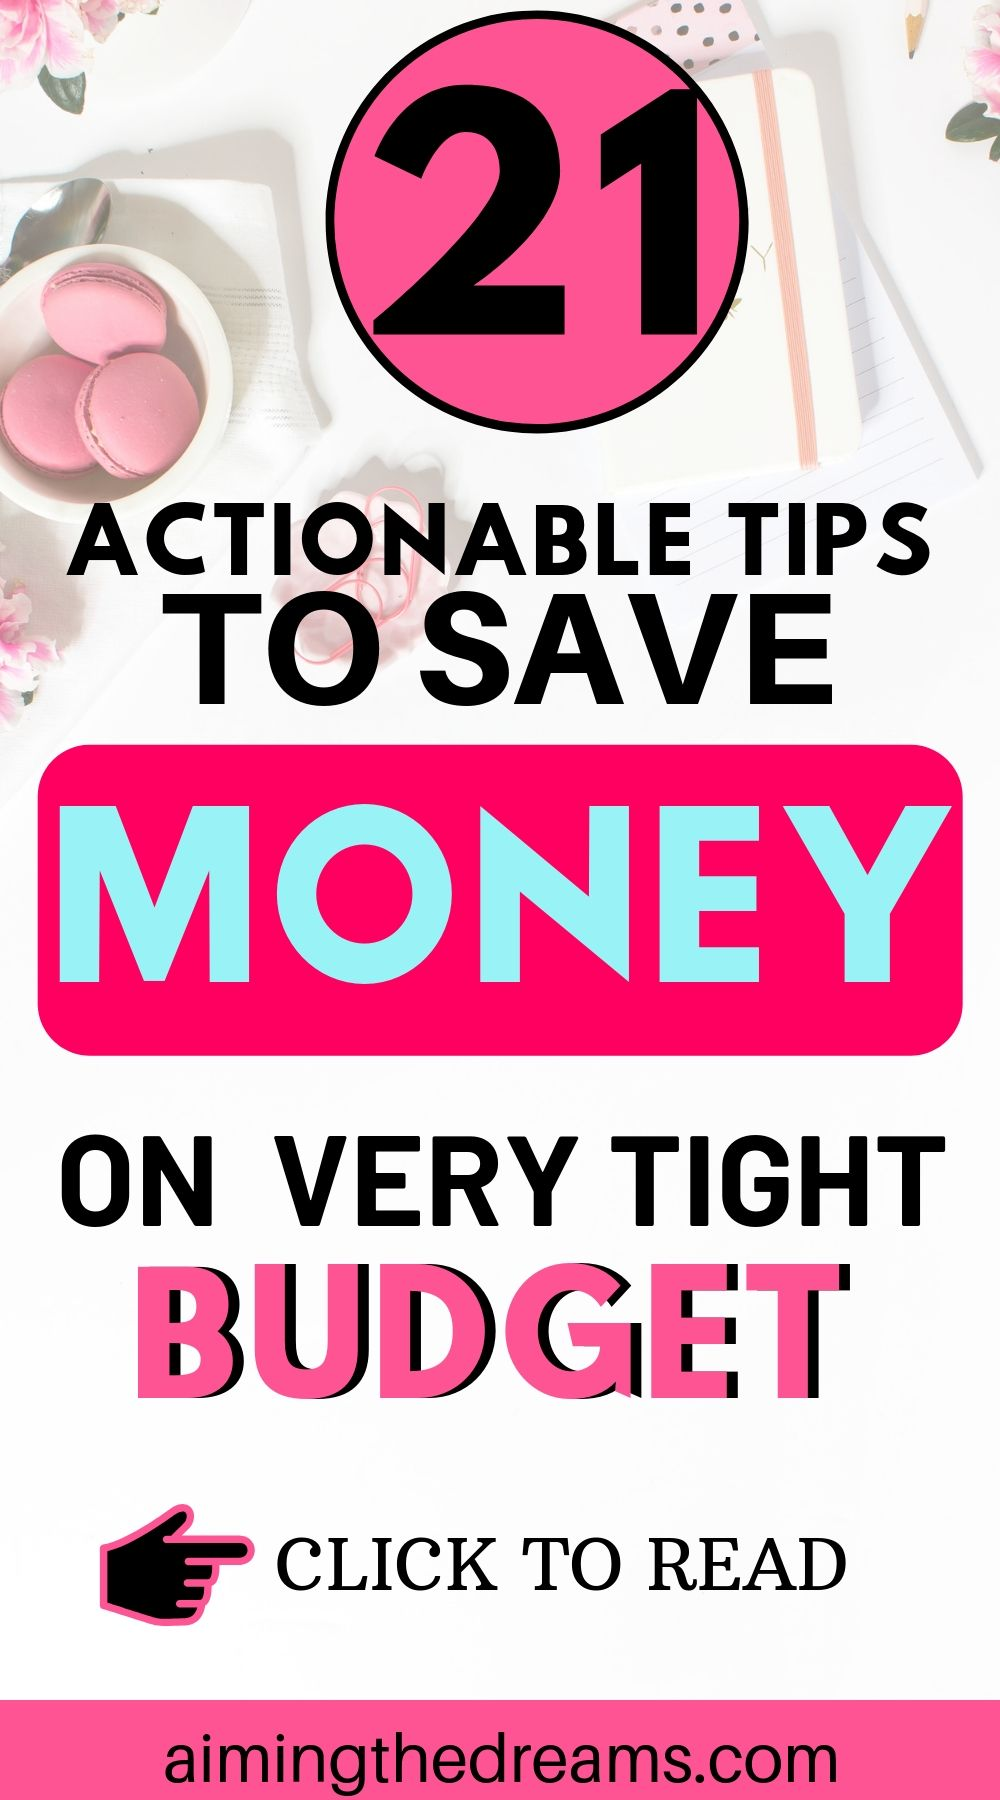 21 tips to save money on very tight budget